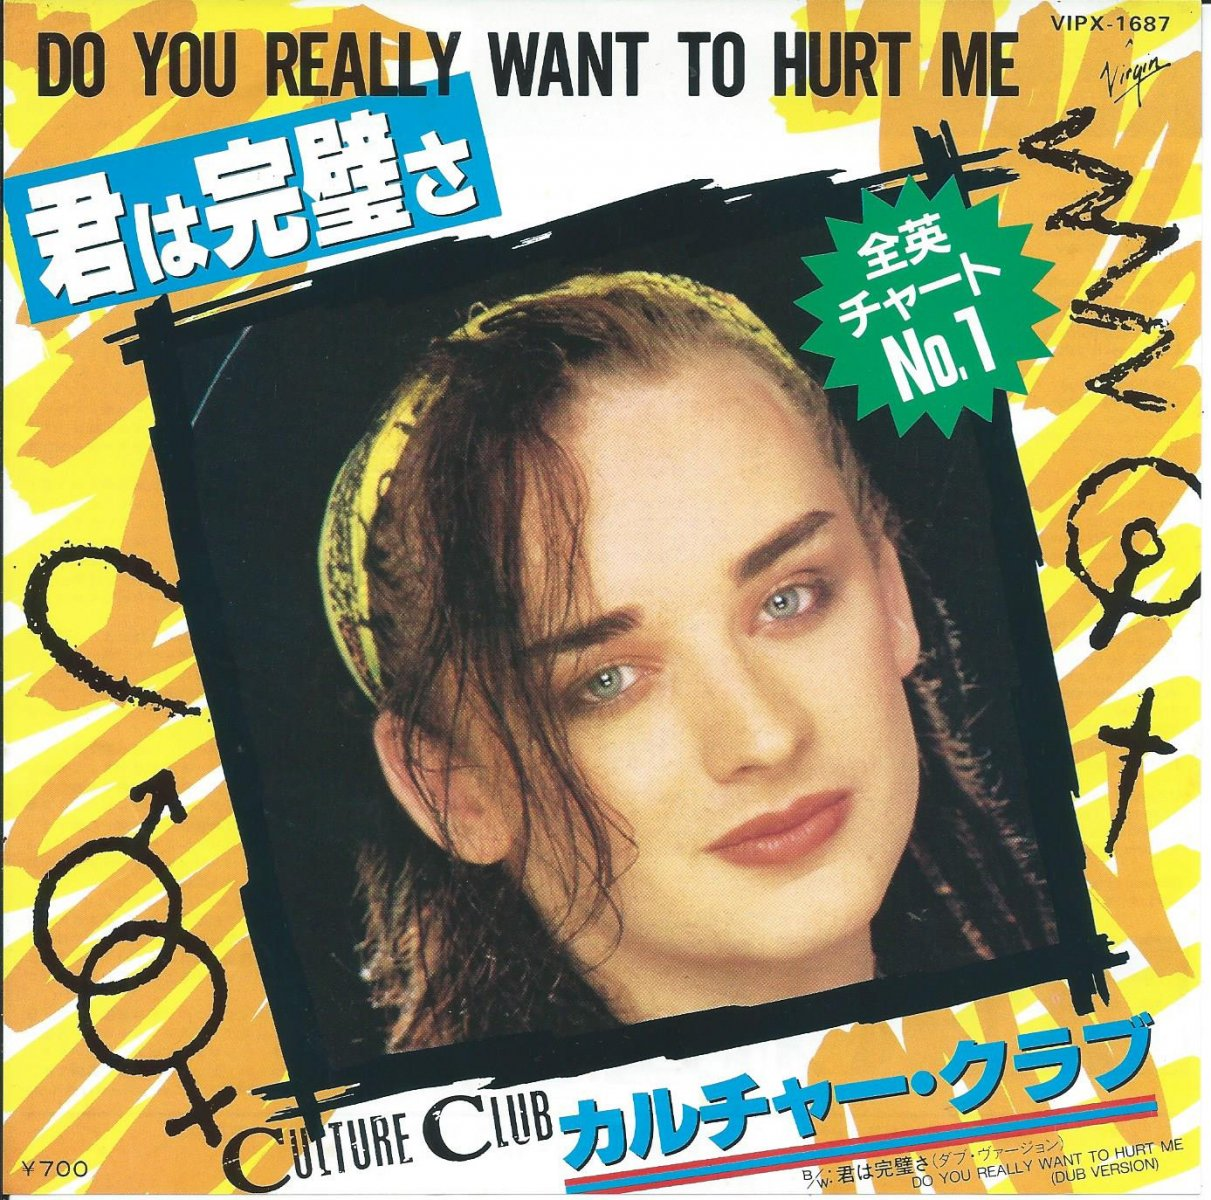 カルチャー・クラブ (CULTURE CLUB) ‎/ 君は完璧さ (DO YOU REALLY WANT TO HURT ME) (7